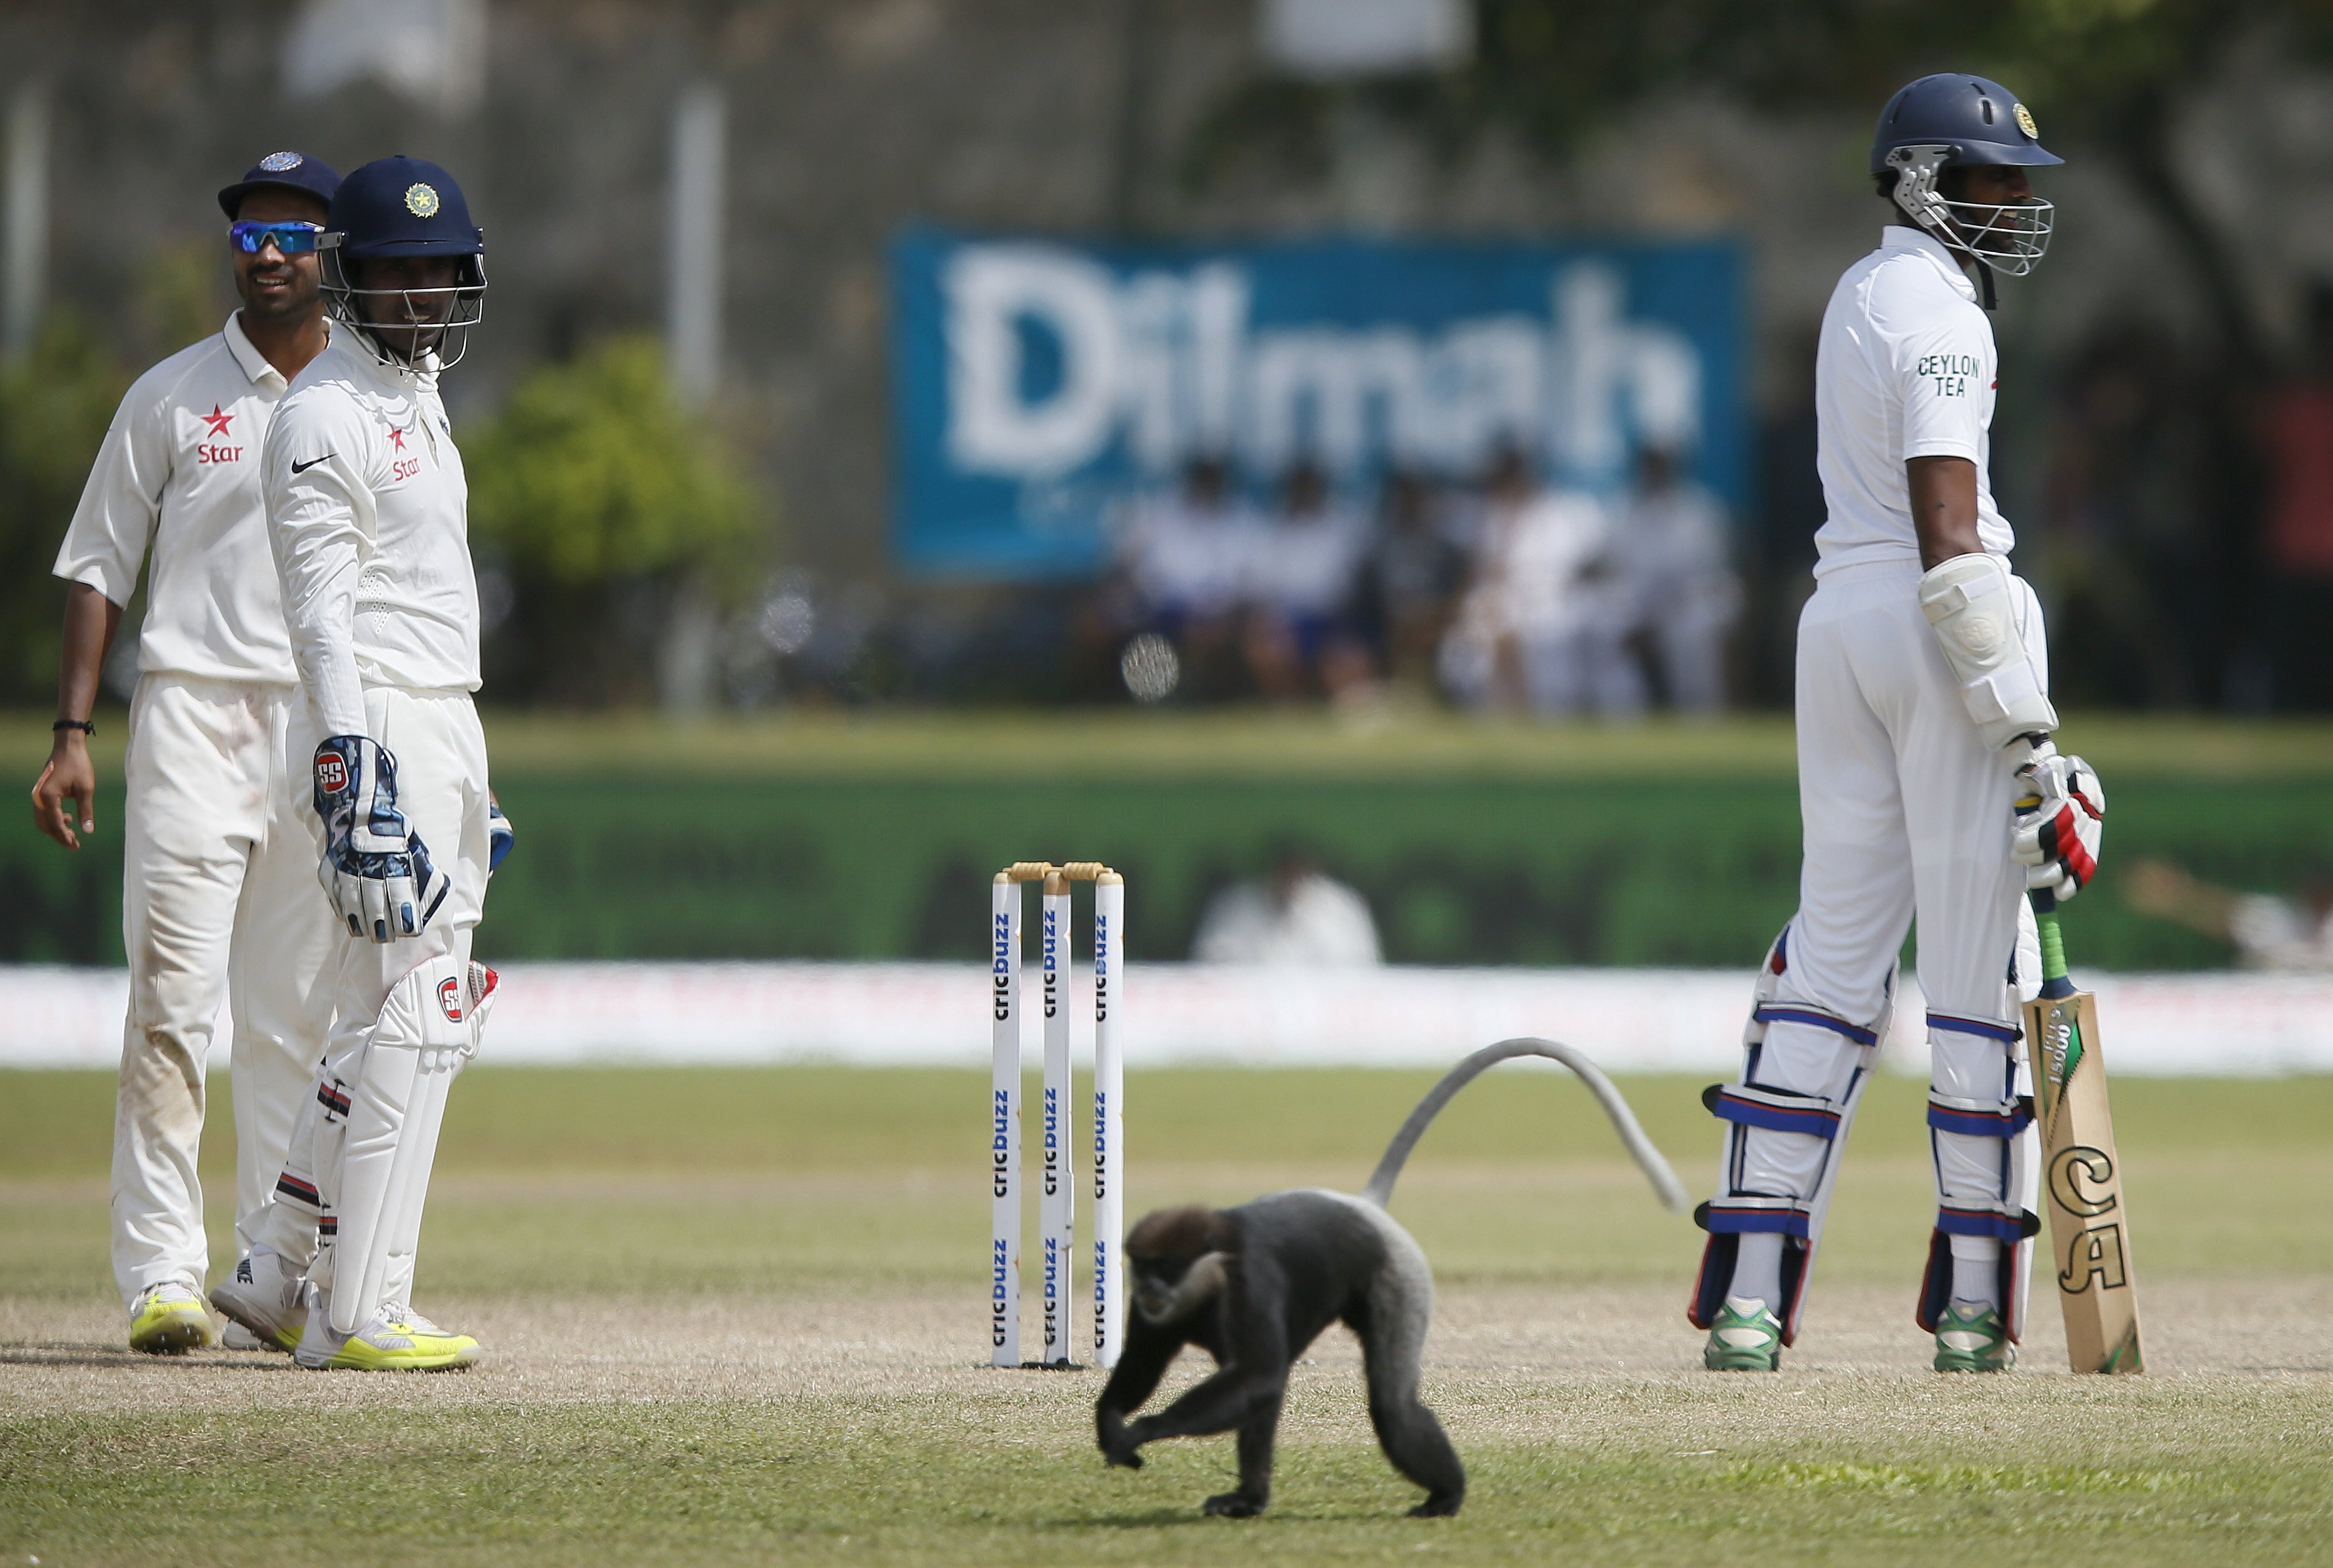 Monkey on cricket ground in Sri Lanka